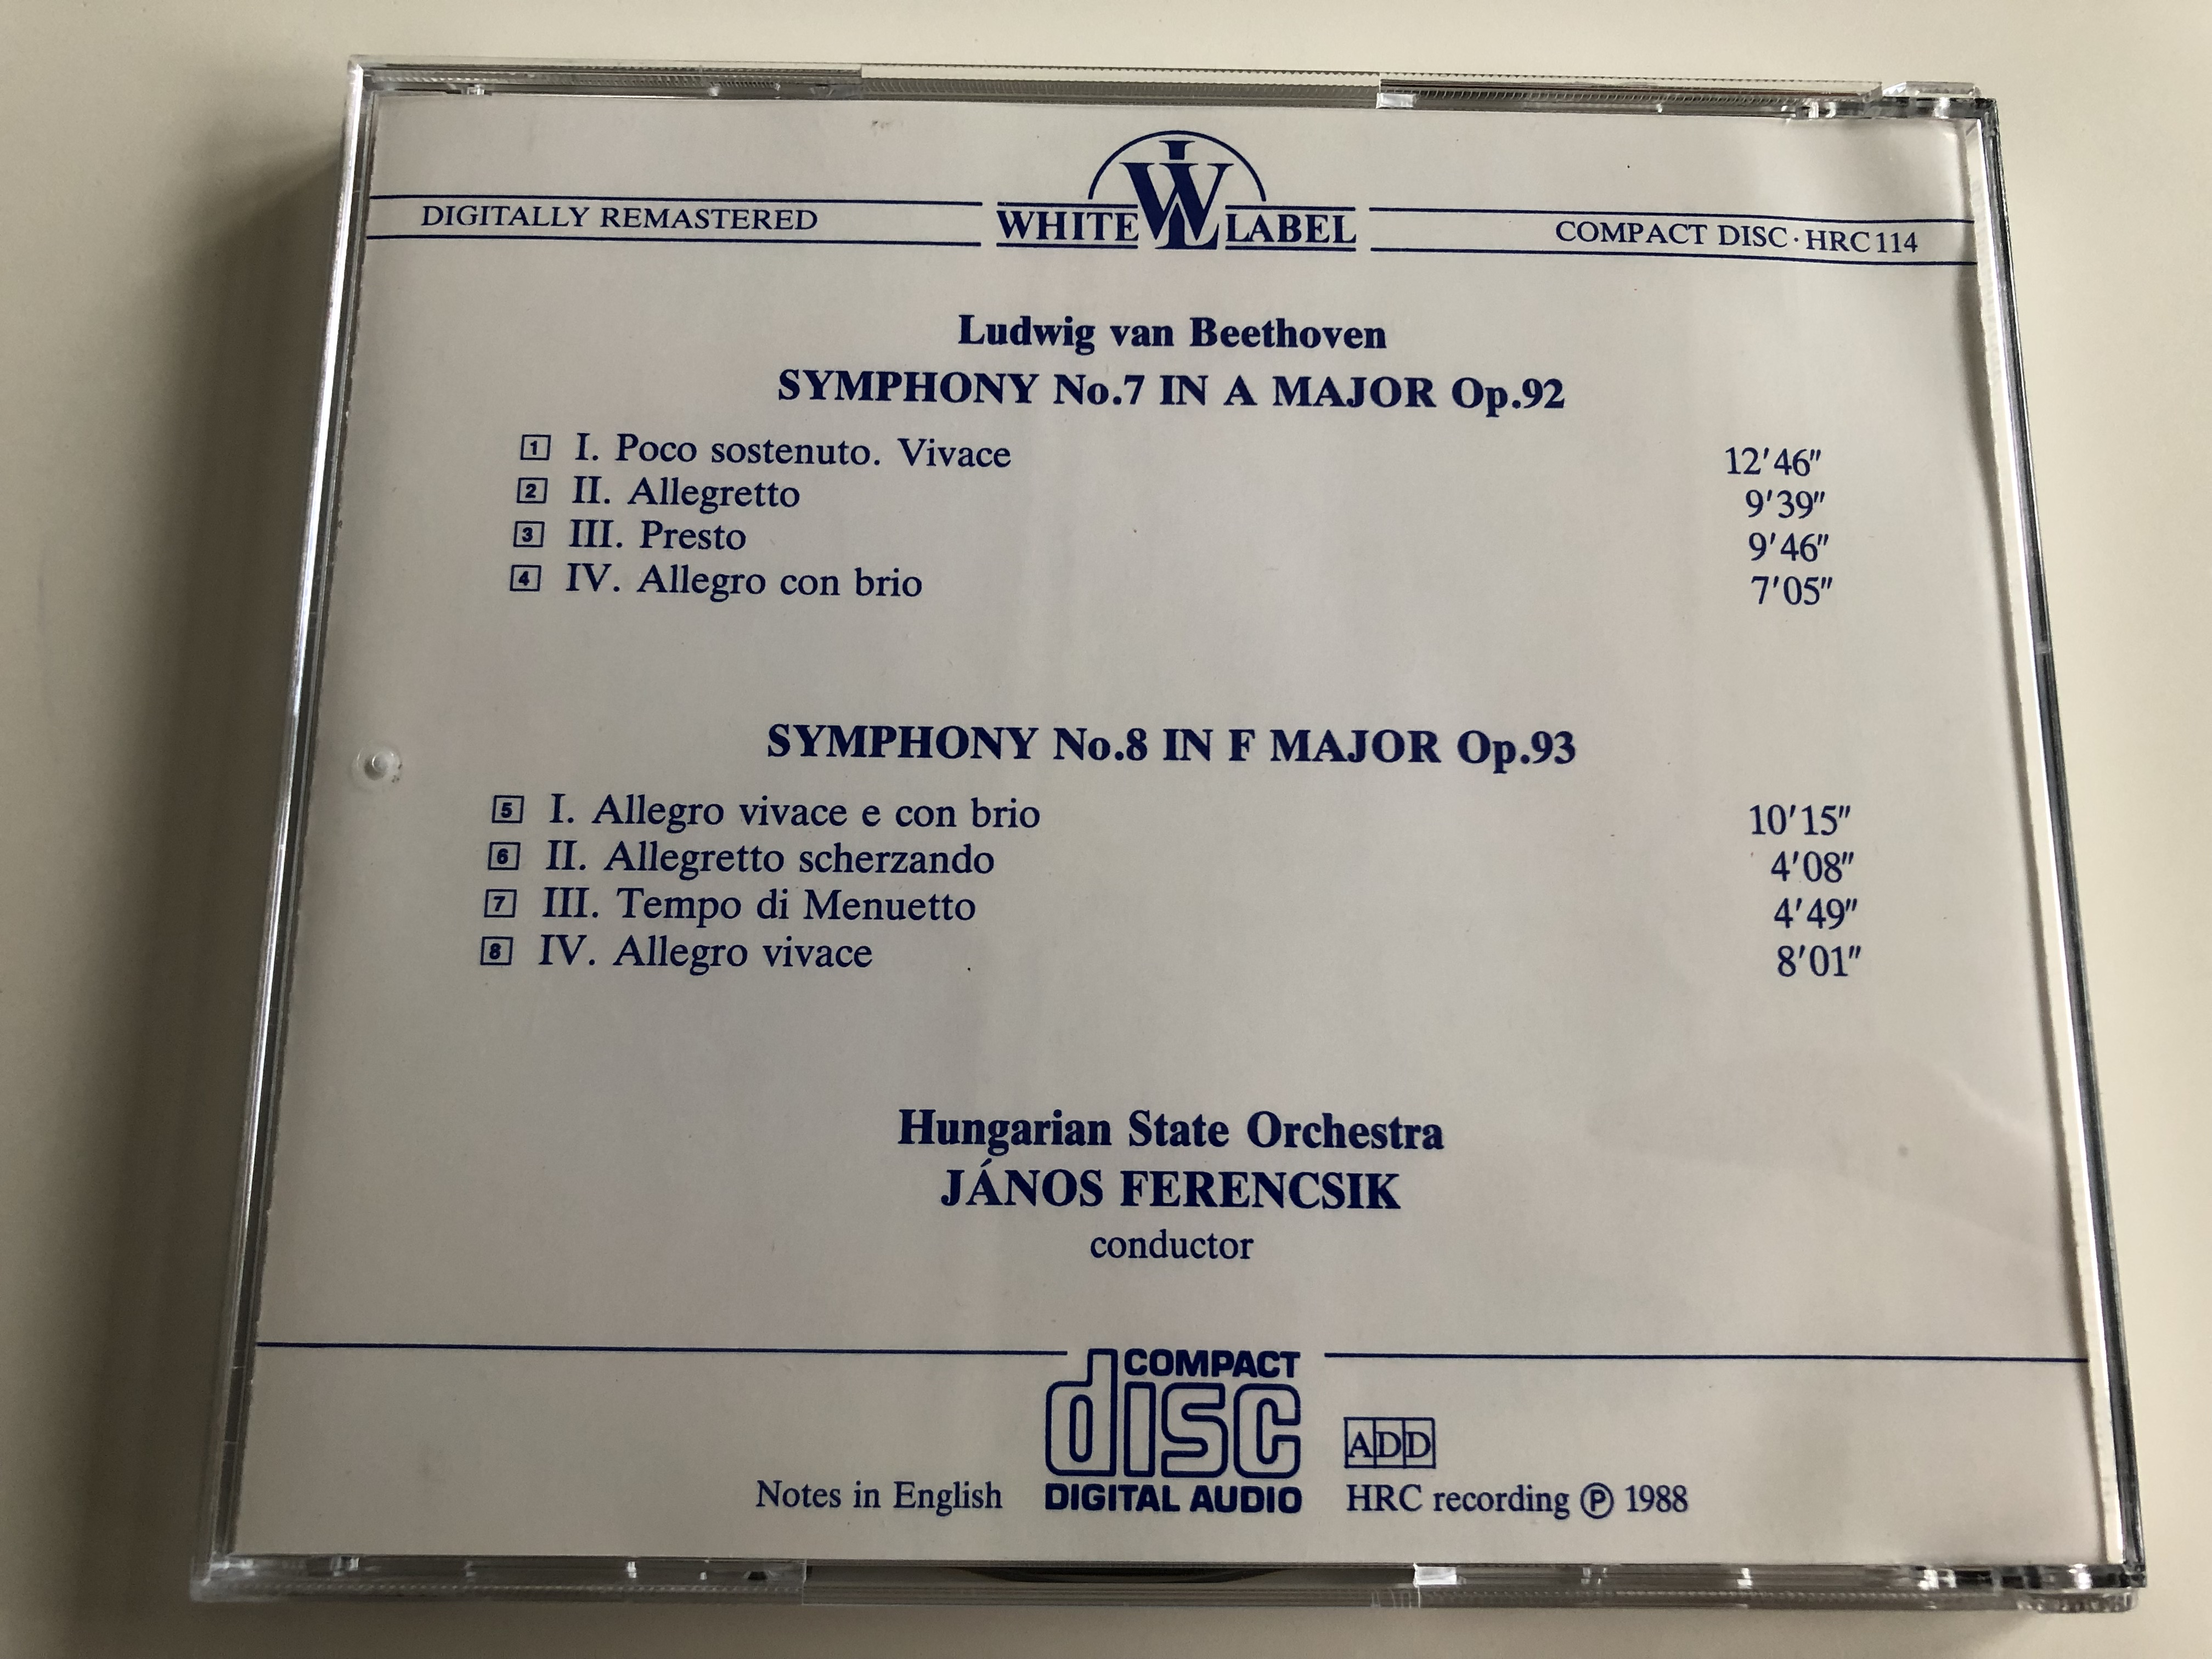 beethoven-symphonies-nos.-7-8-audio-cd-1998-hungarian-state-orchestra-conducted-by-j-nos-ferencsik-hungaroton-white-label-hrc-114-5-.jpg